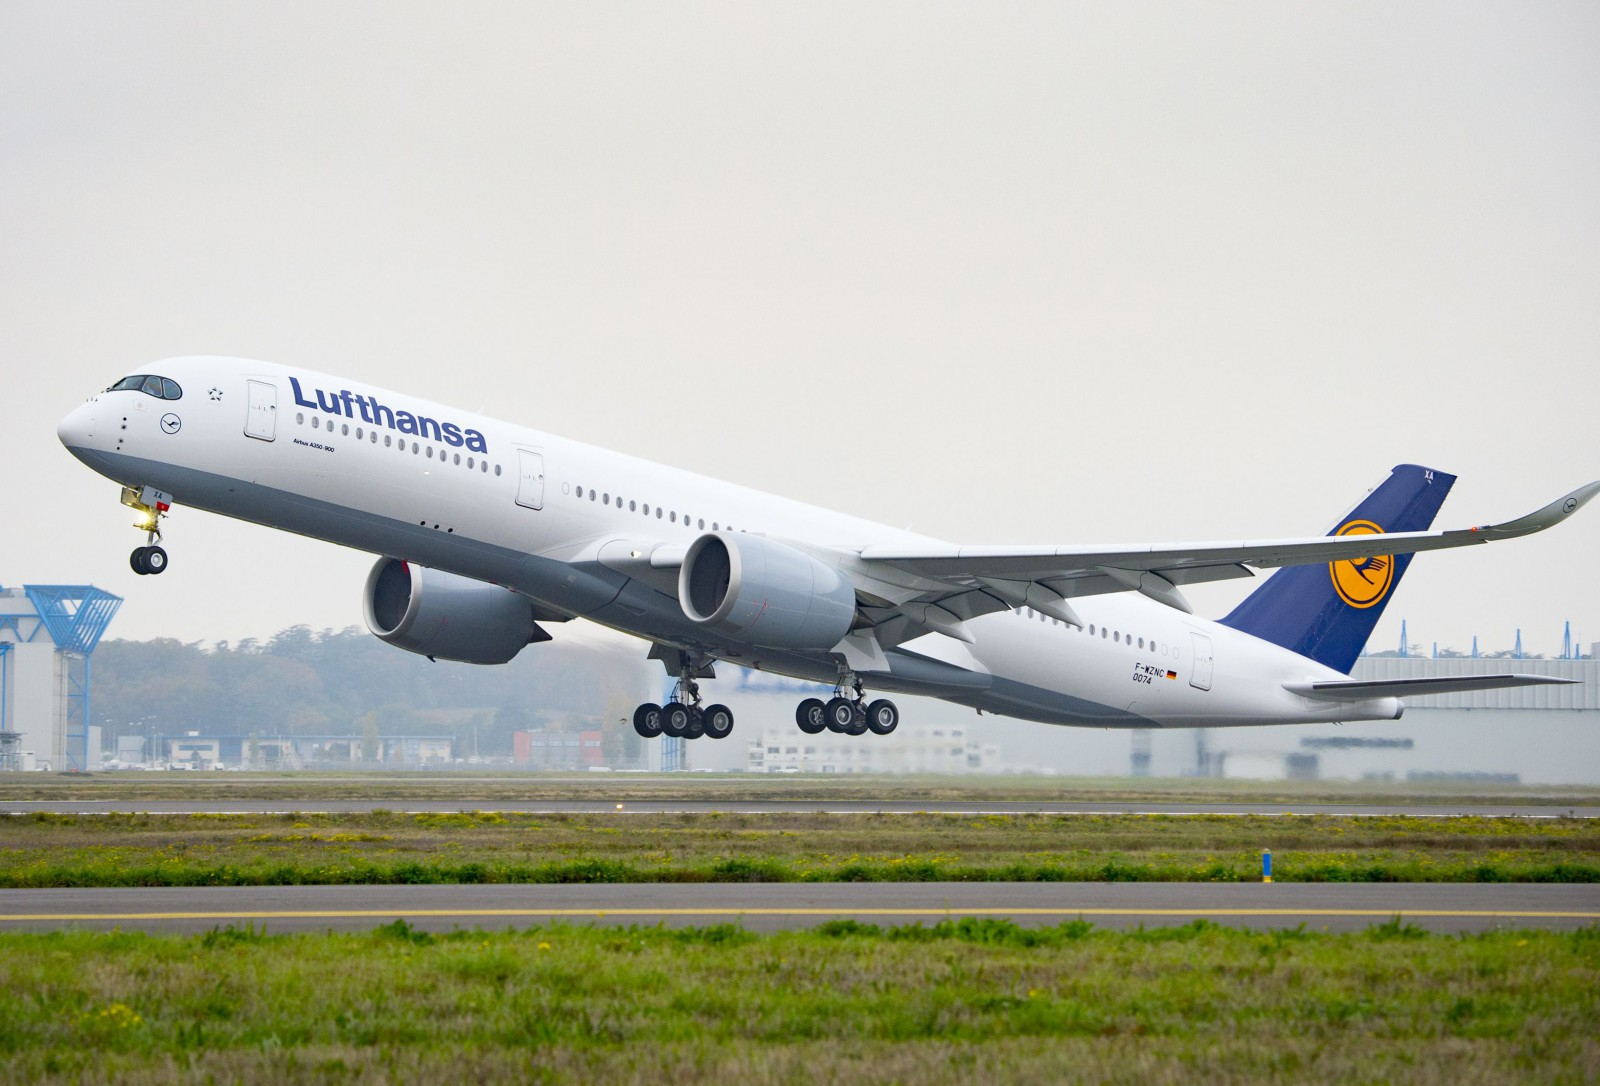 Lufthansa considers 787 and reveals 777X plans - Airline Ratings